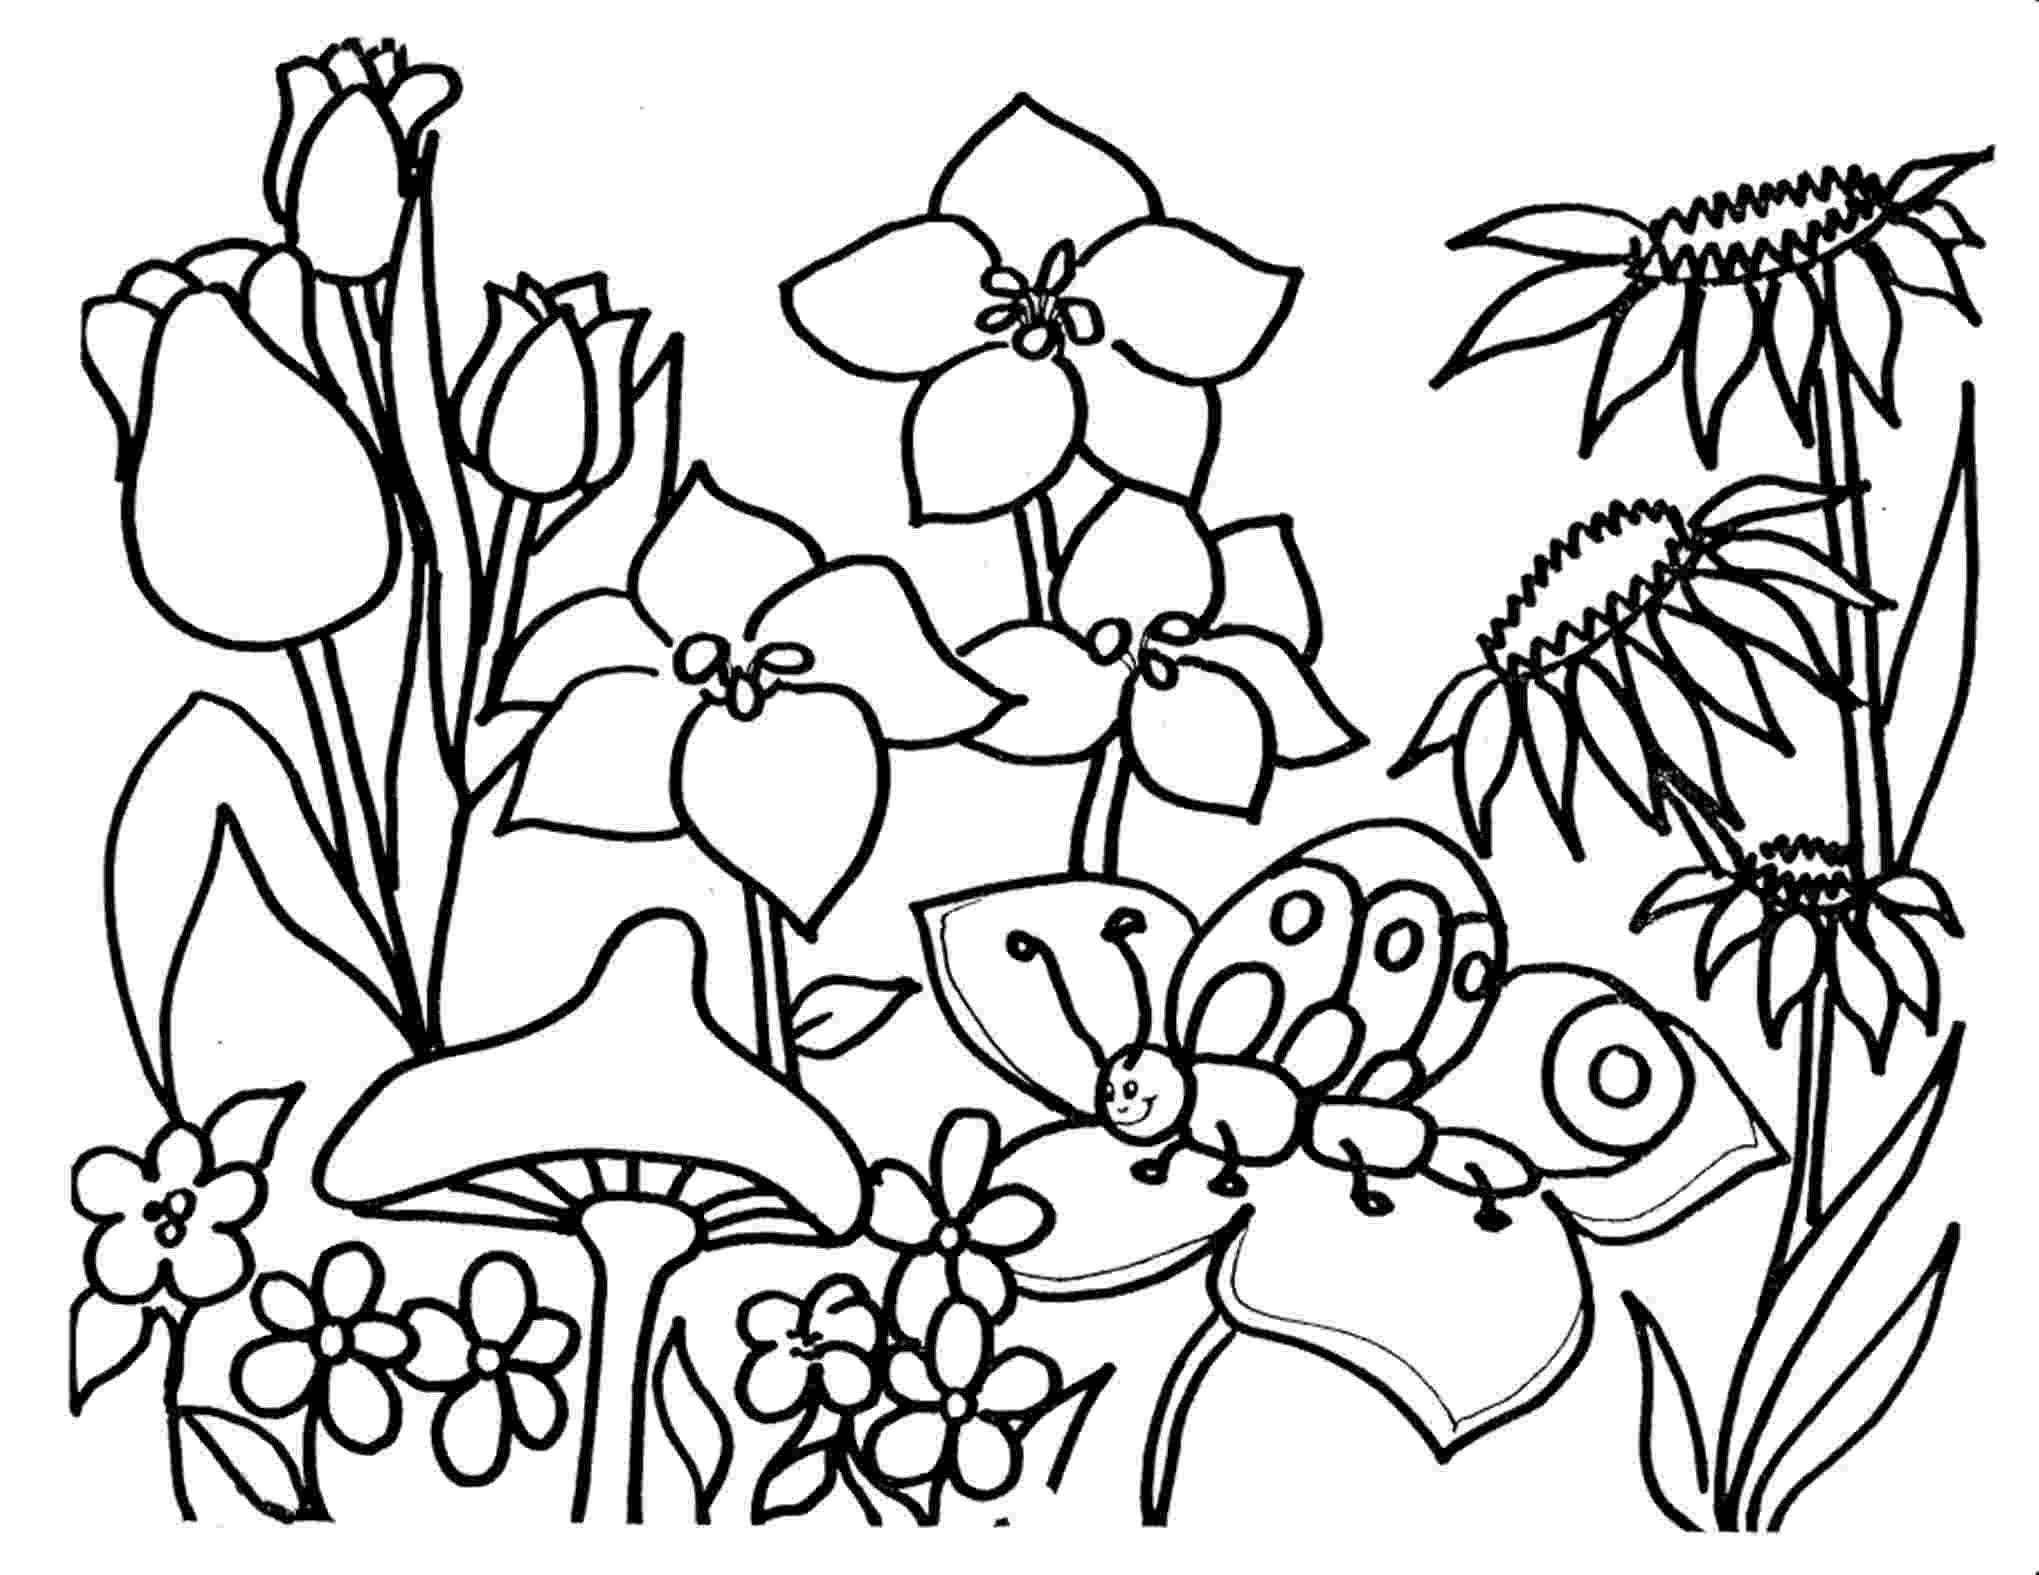 coloring flower pictures free printable flower coloring pages for kids best pictures coloring flower